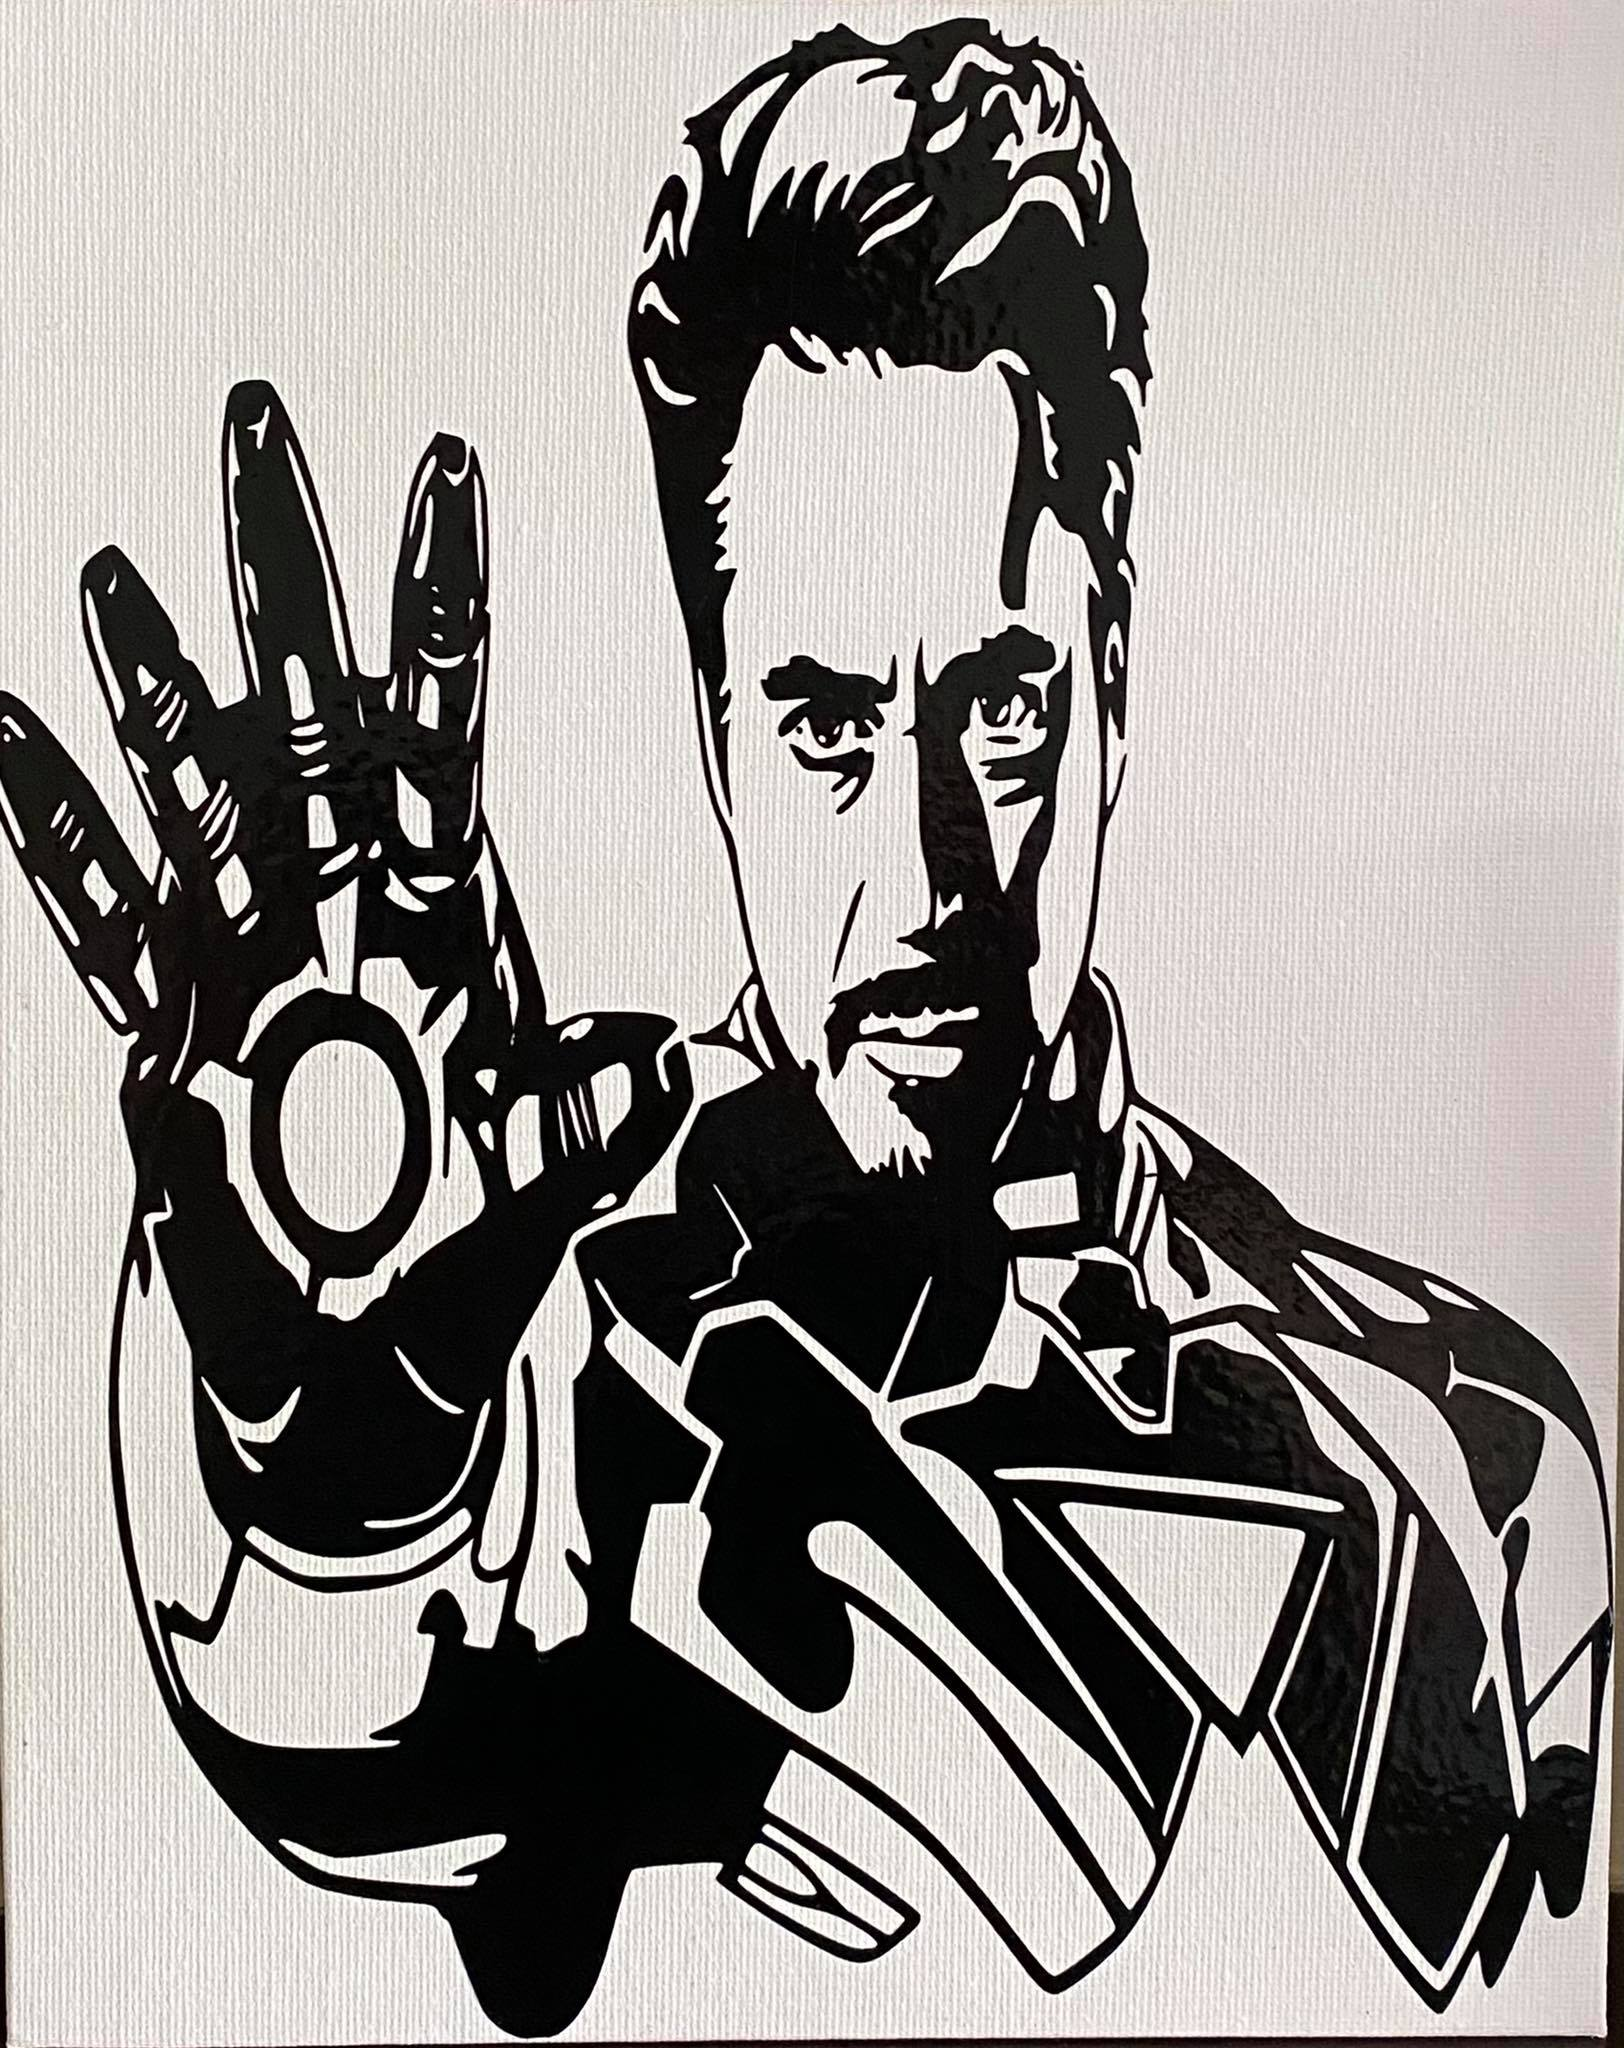 Tony Stark Canvas Board.